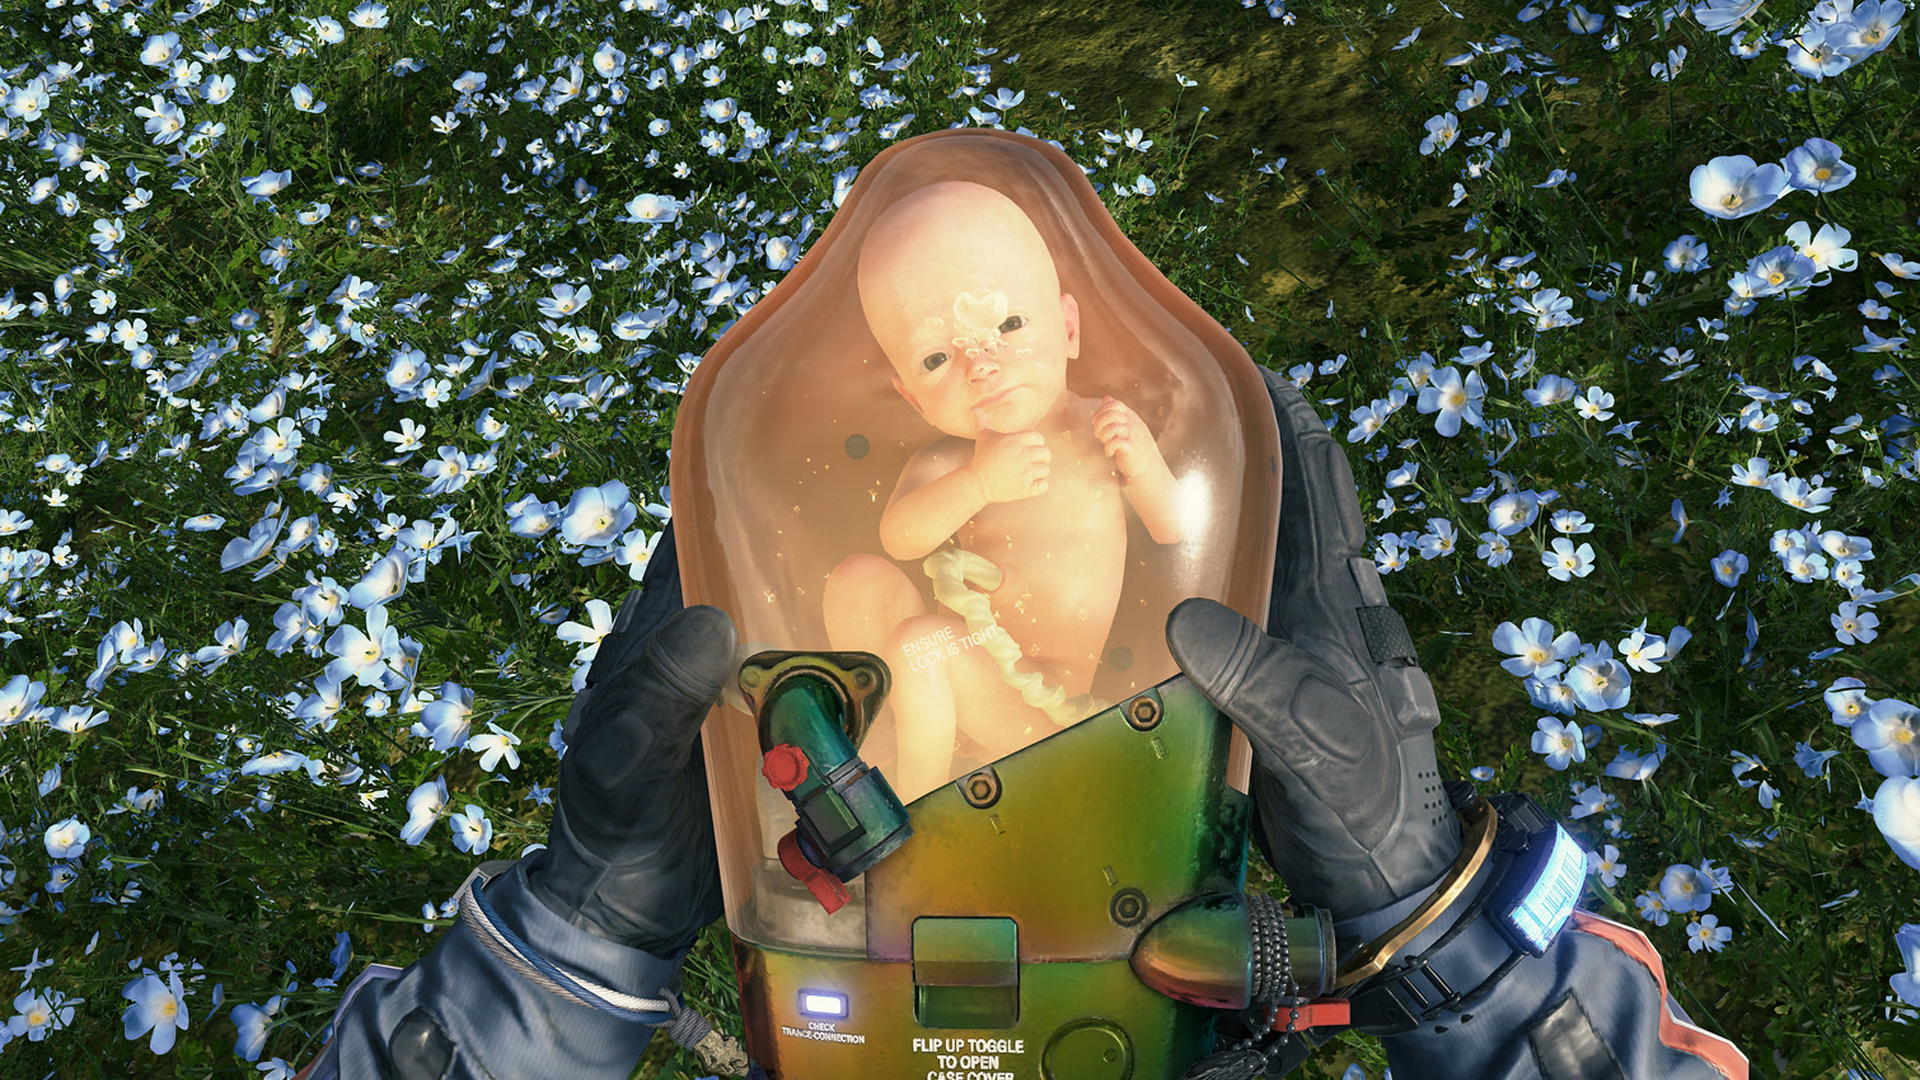 DEATH STRANDING DIRECTOR'S CUT, IS THE CROSS SAVE AVAILABLE?